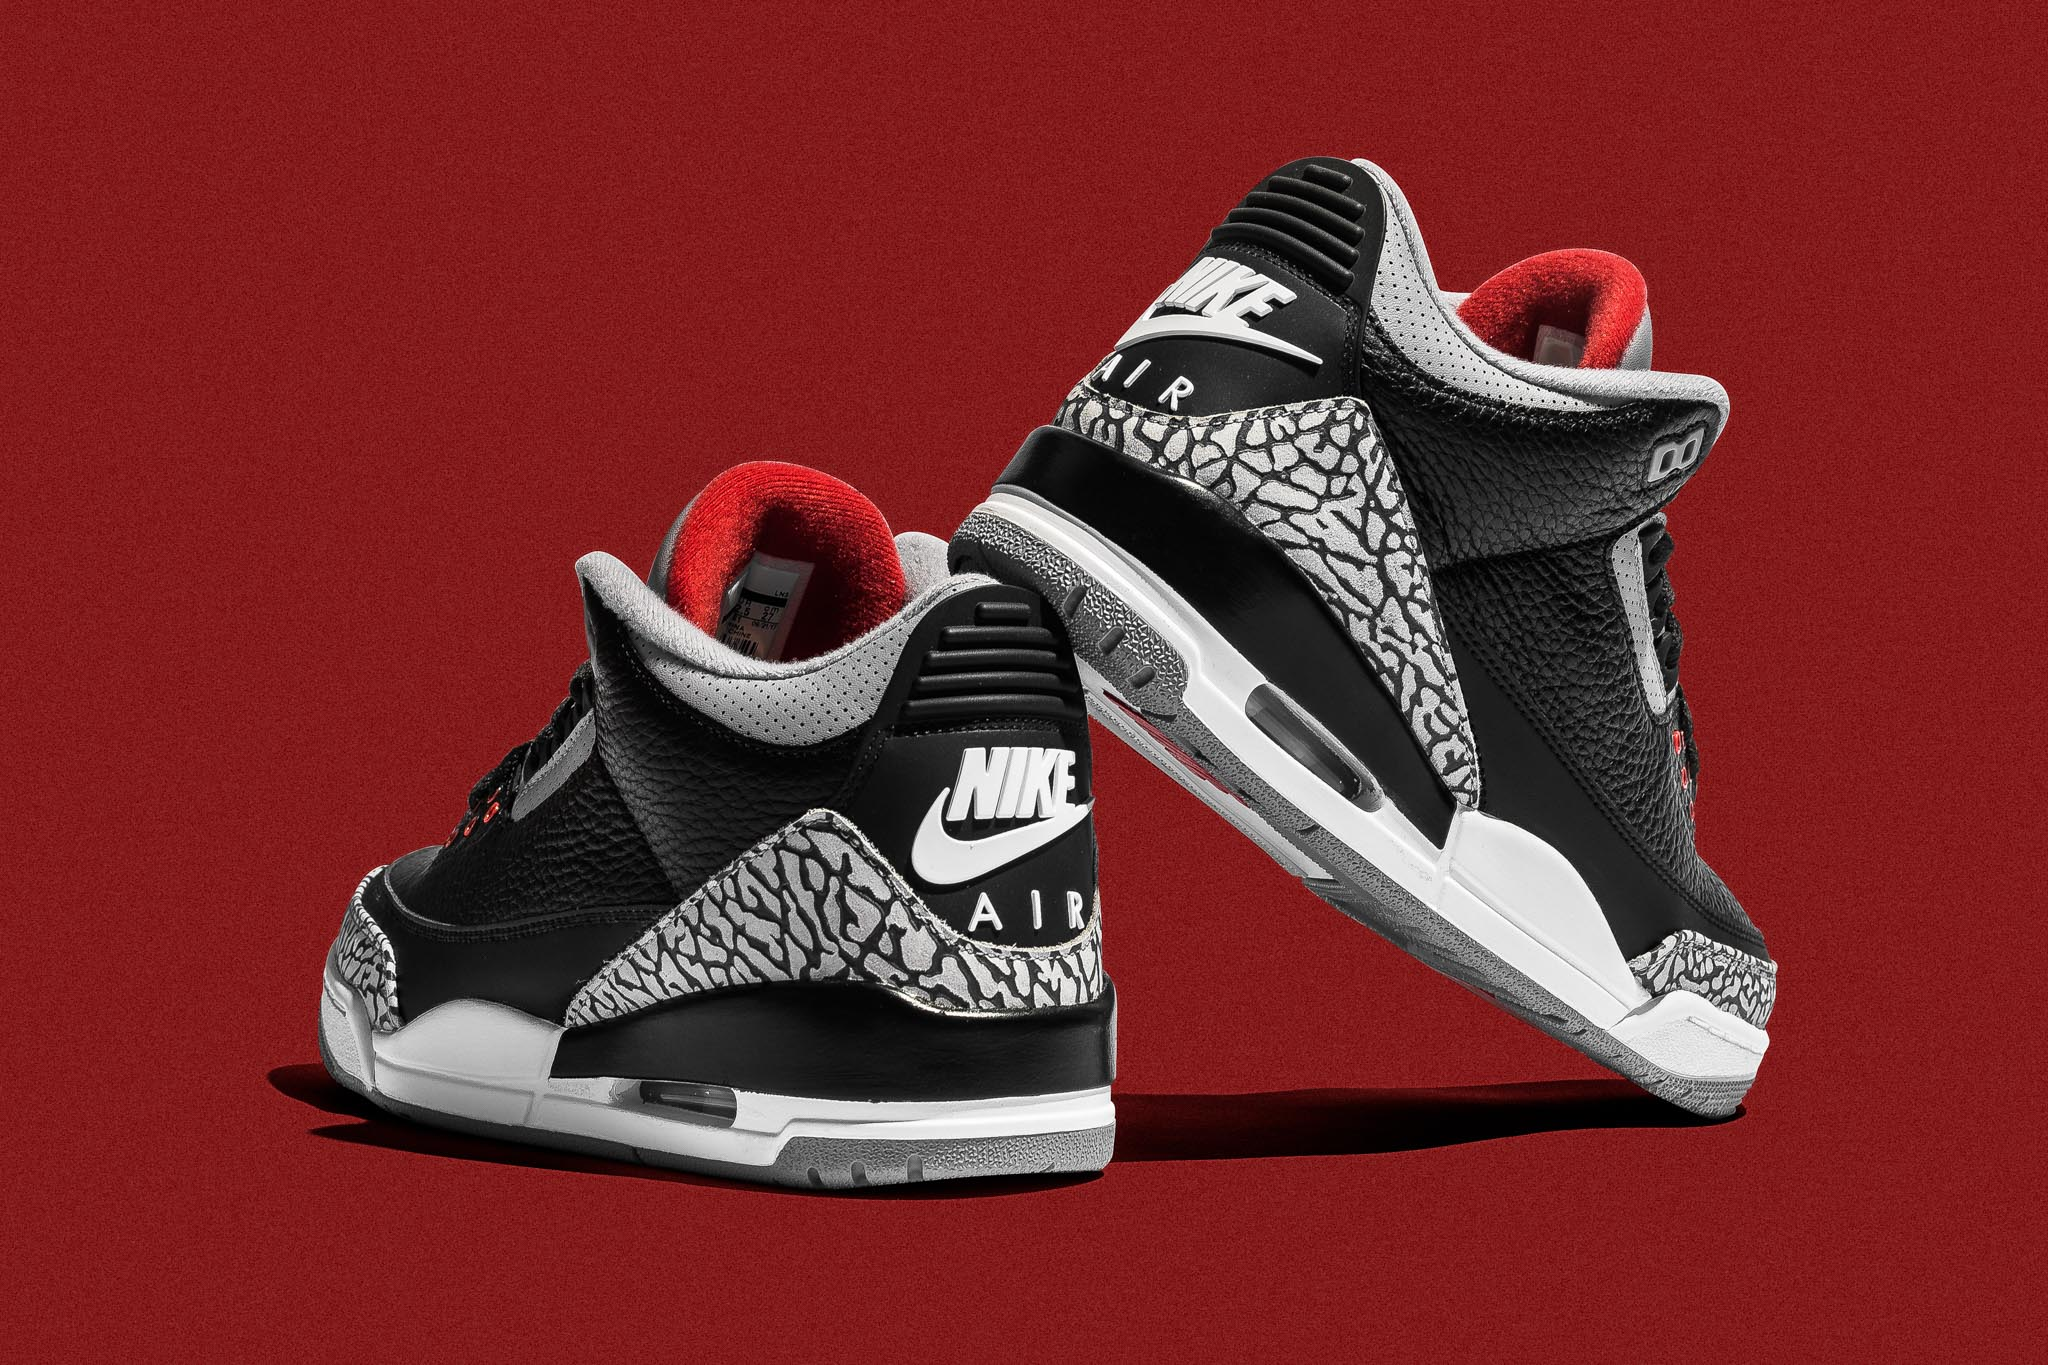 b54c01edabf8 ... best air jordan 3 retro black cement are back for 2018 and mark the  30th anniversary